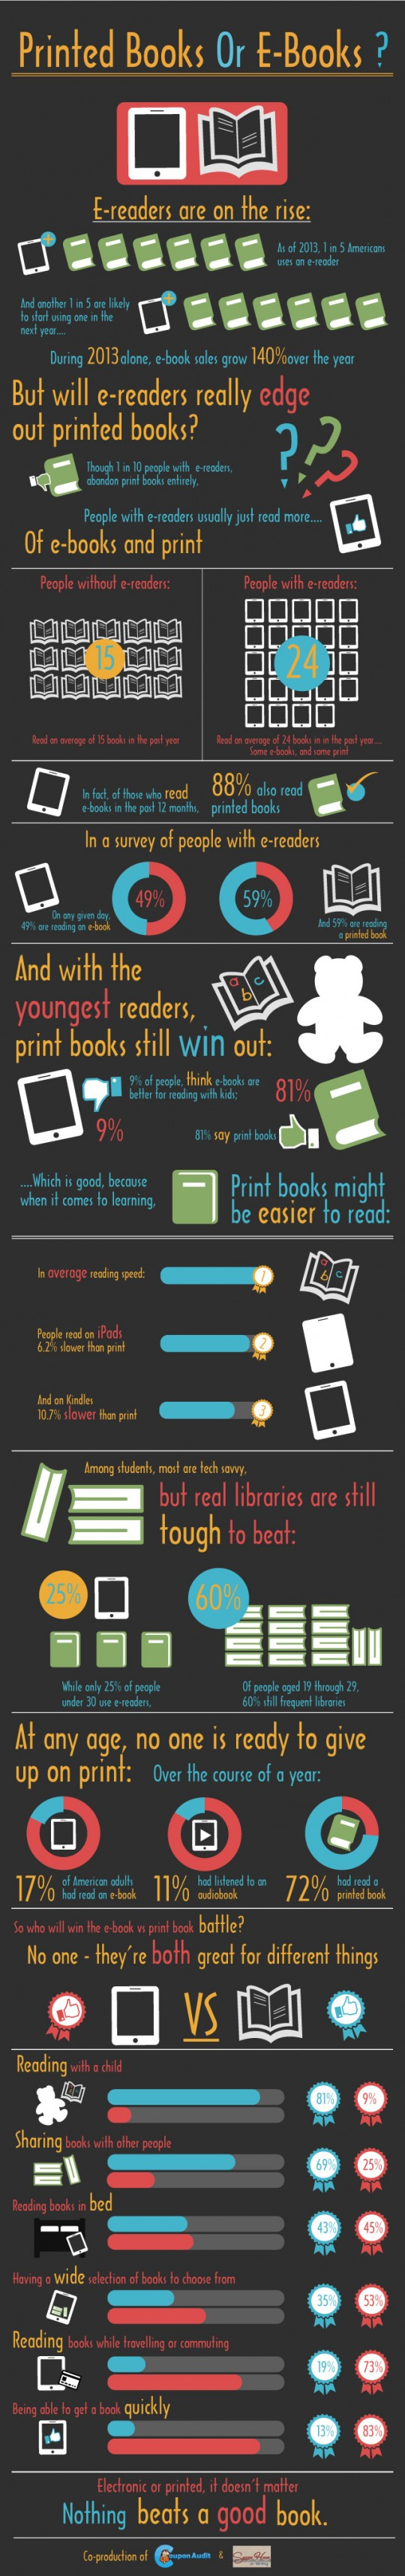 To read or not to read ebooks